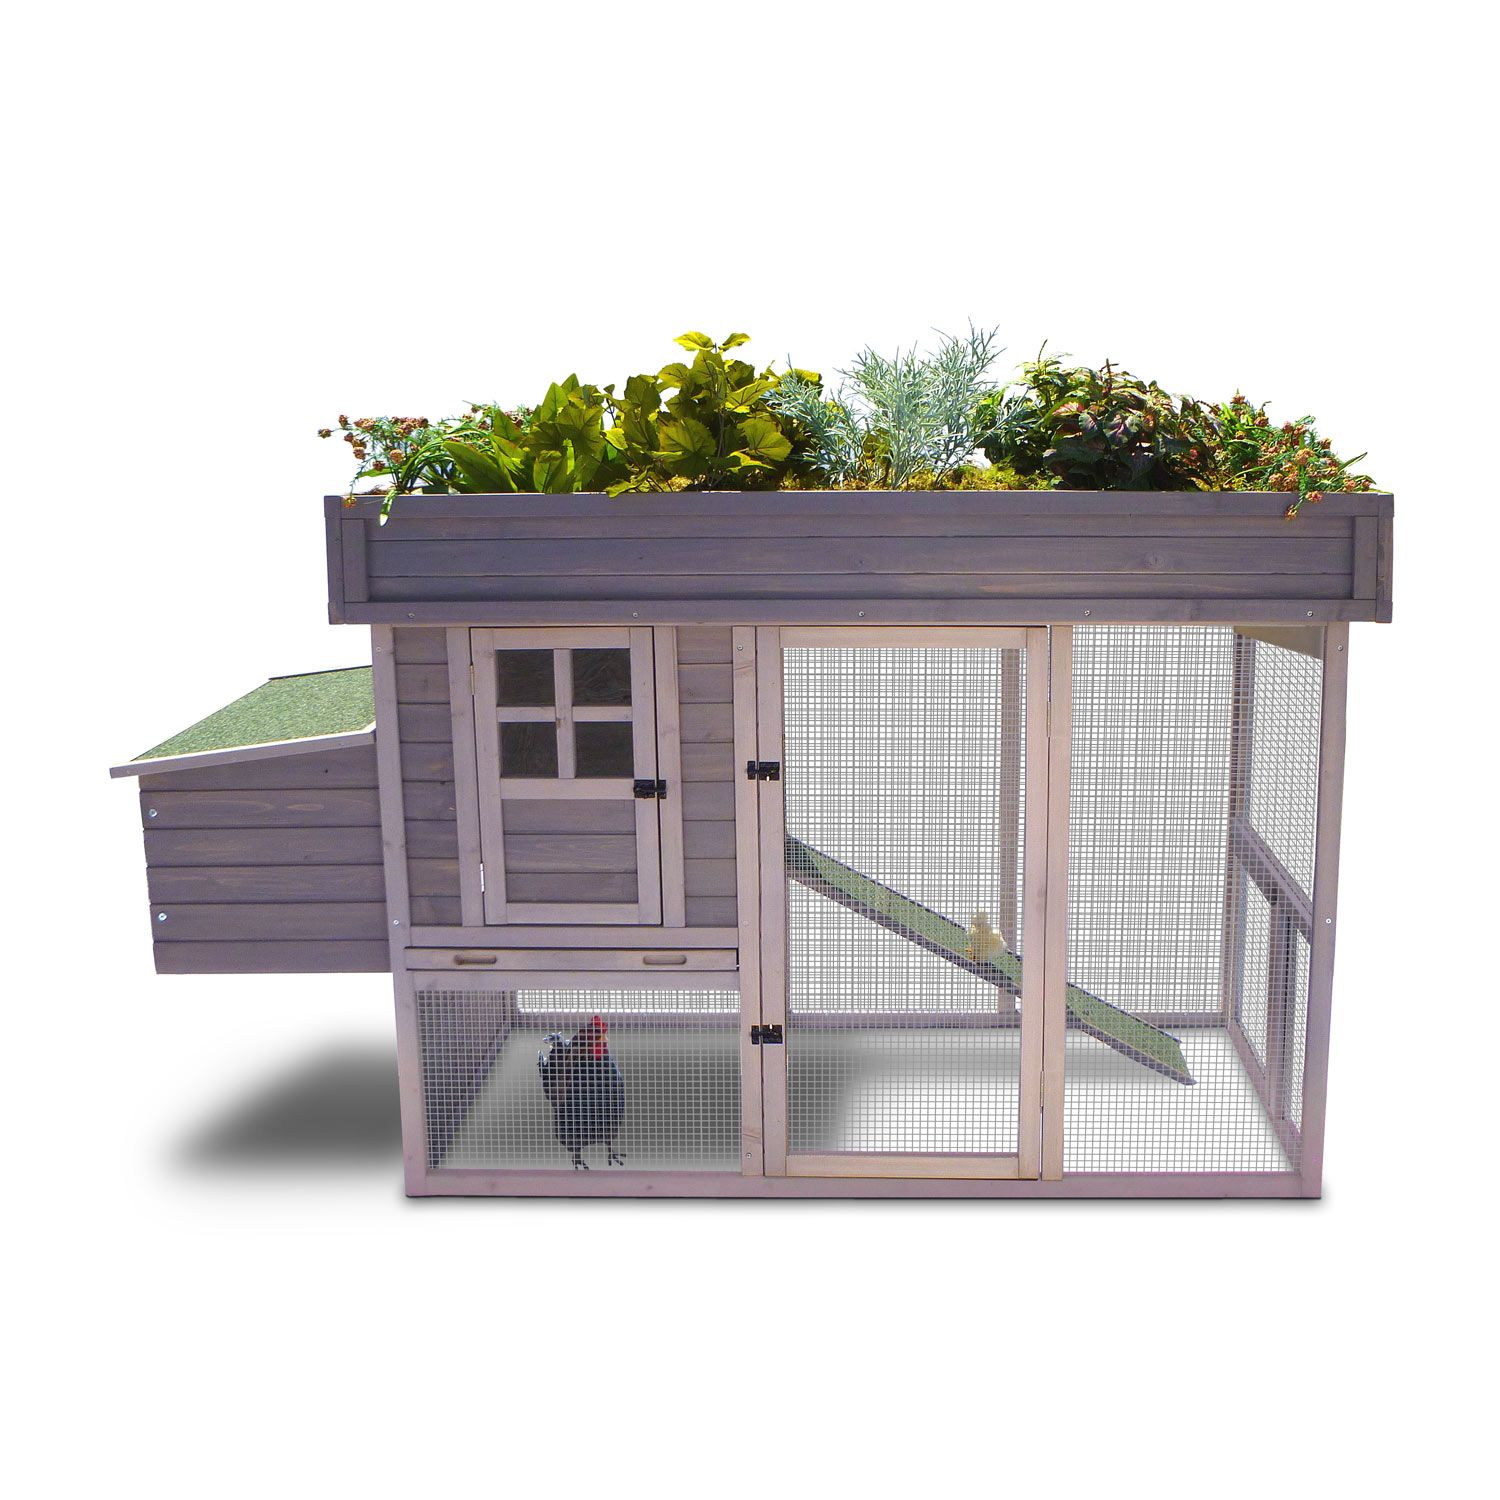 precision pet garden top chicken coop holds 4 chickens 400 would